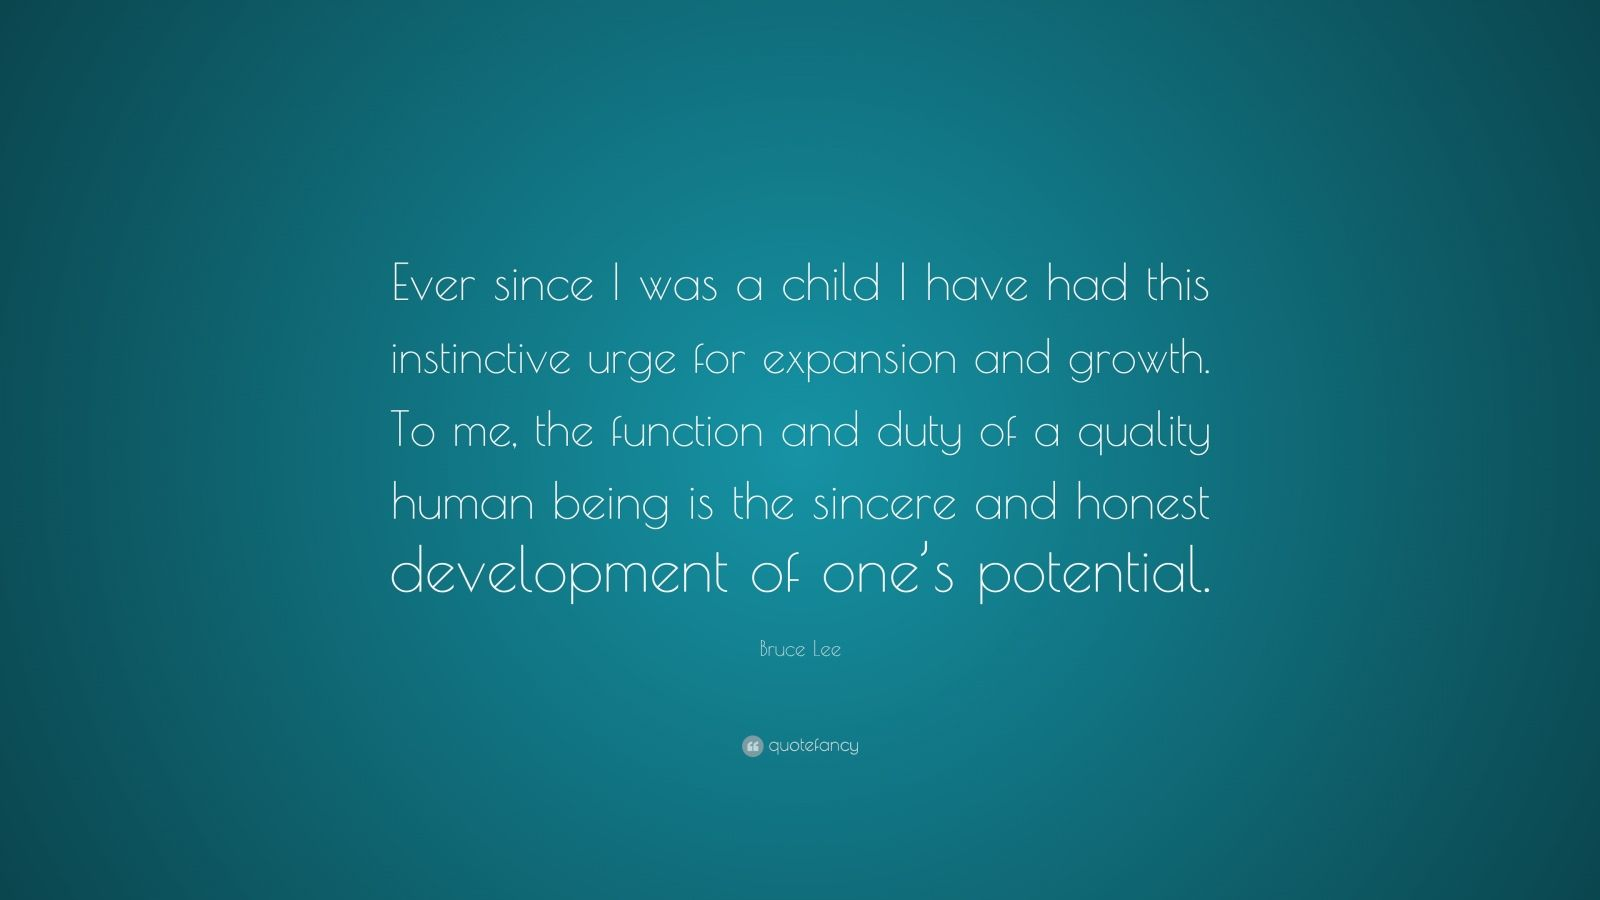 """Bruce Lee Quote: """"Ever since I was a child I have had this instinctive urge for expansion and growth. To me, the function and duty of a quality human being is the sincere and honest development of one's potential."""""""